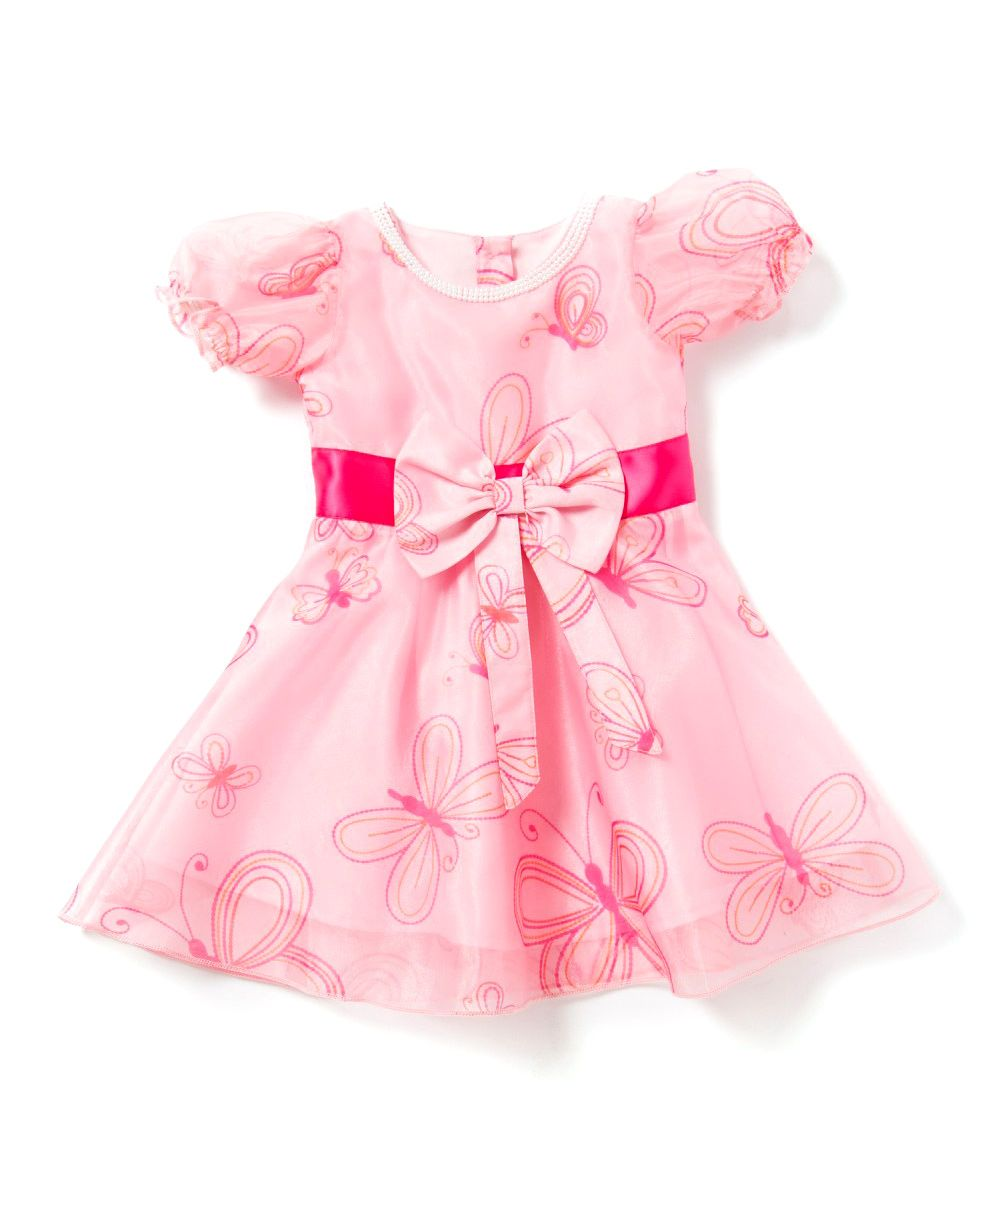 Buy 2 Get 1 Free Entire Fashion Range For Kids By Firstcry | Chicabelle Baby Girls Dress With Matching Bloomer Set - Pink @ Rs.960